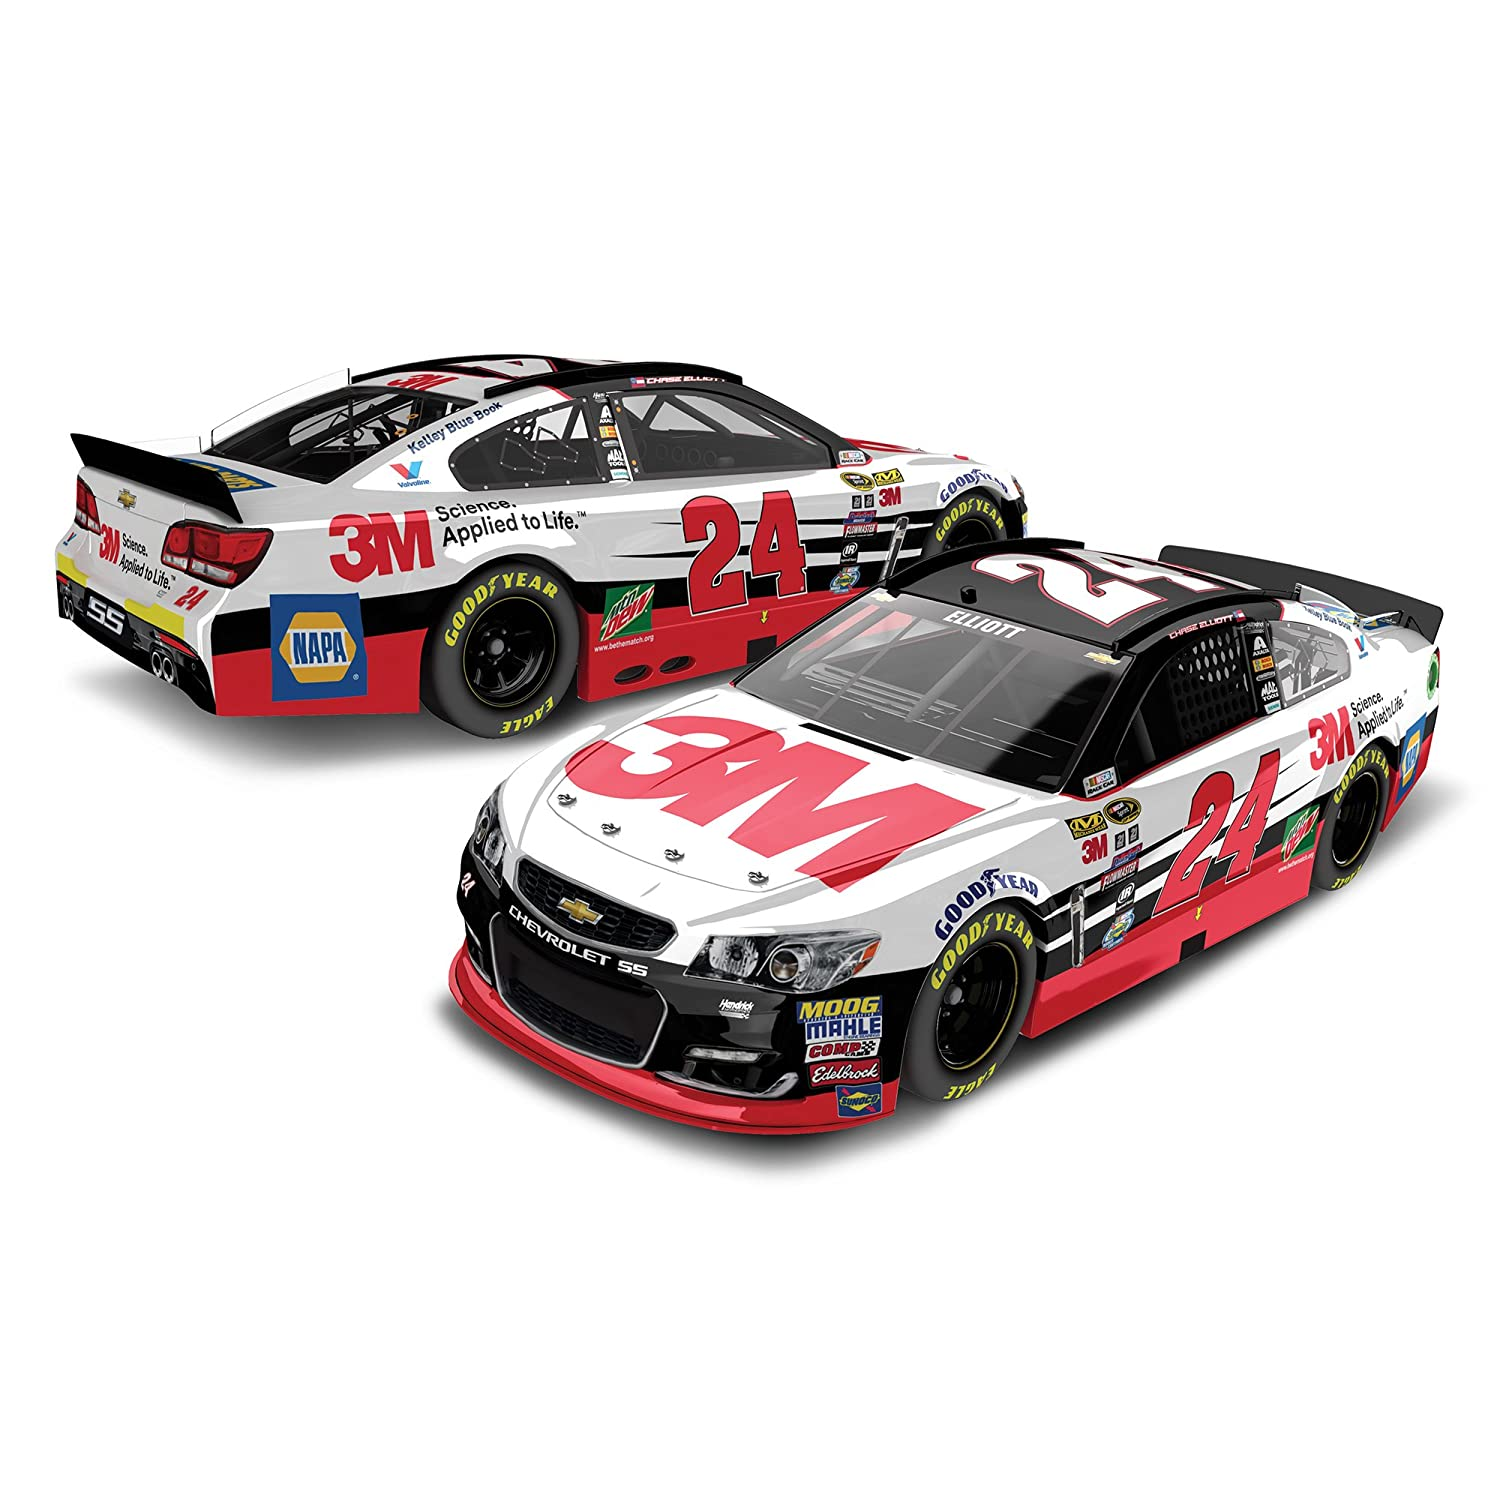 Lionel Racing Chase Elliott 24 3M 2016 Chevy SS NASCAR 1:24 Scale Diecast Car